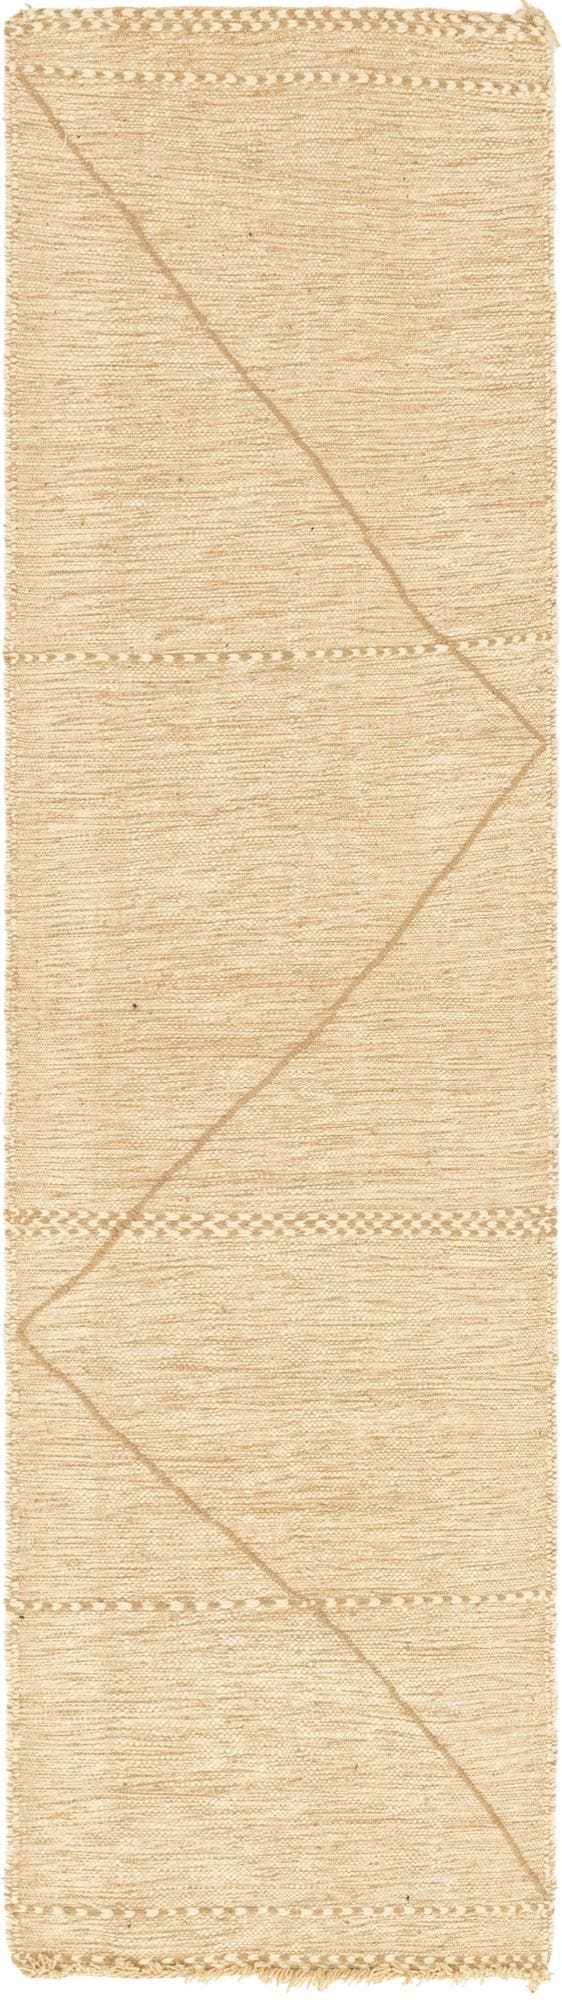 2' 7 x 10' 5 Moroccan Runner Rug main image